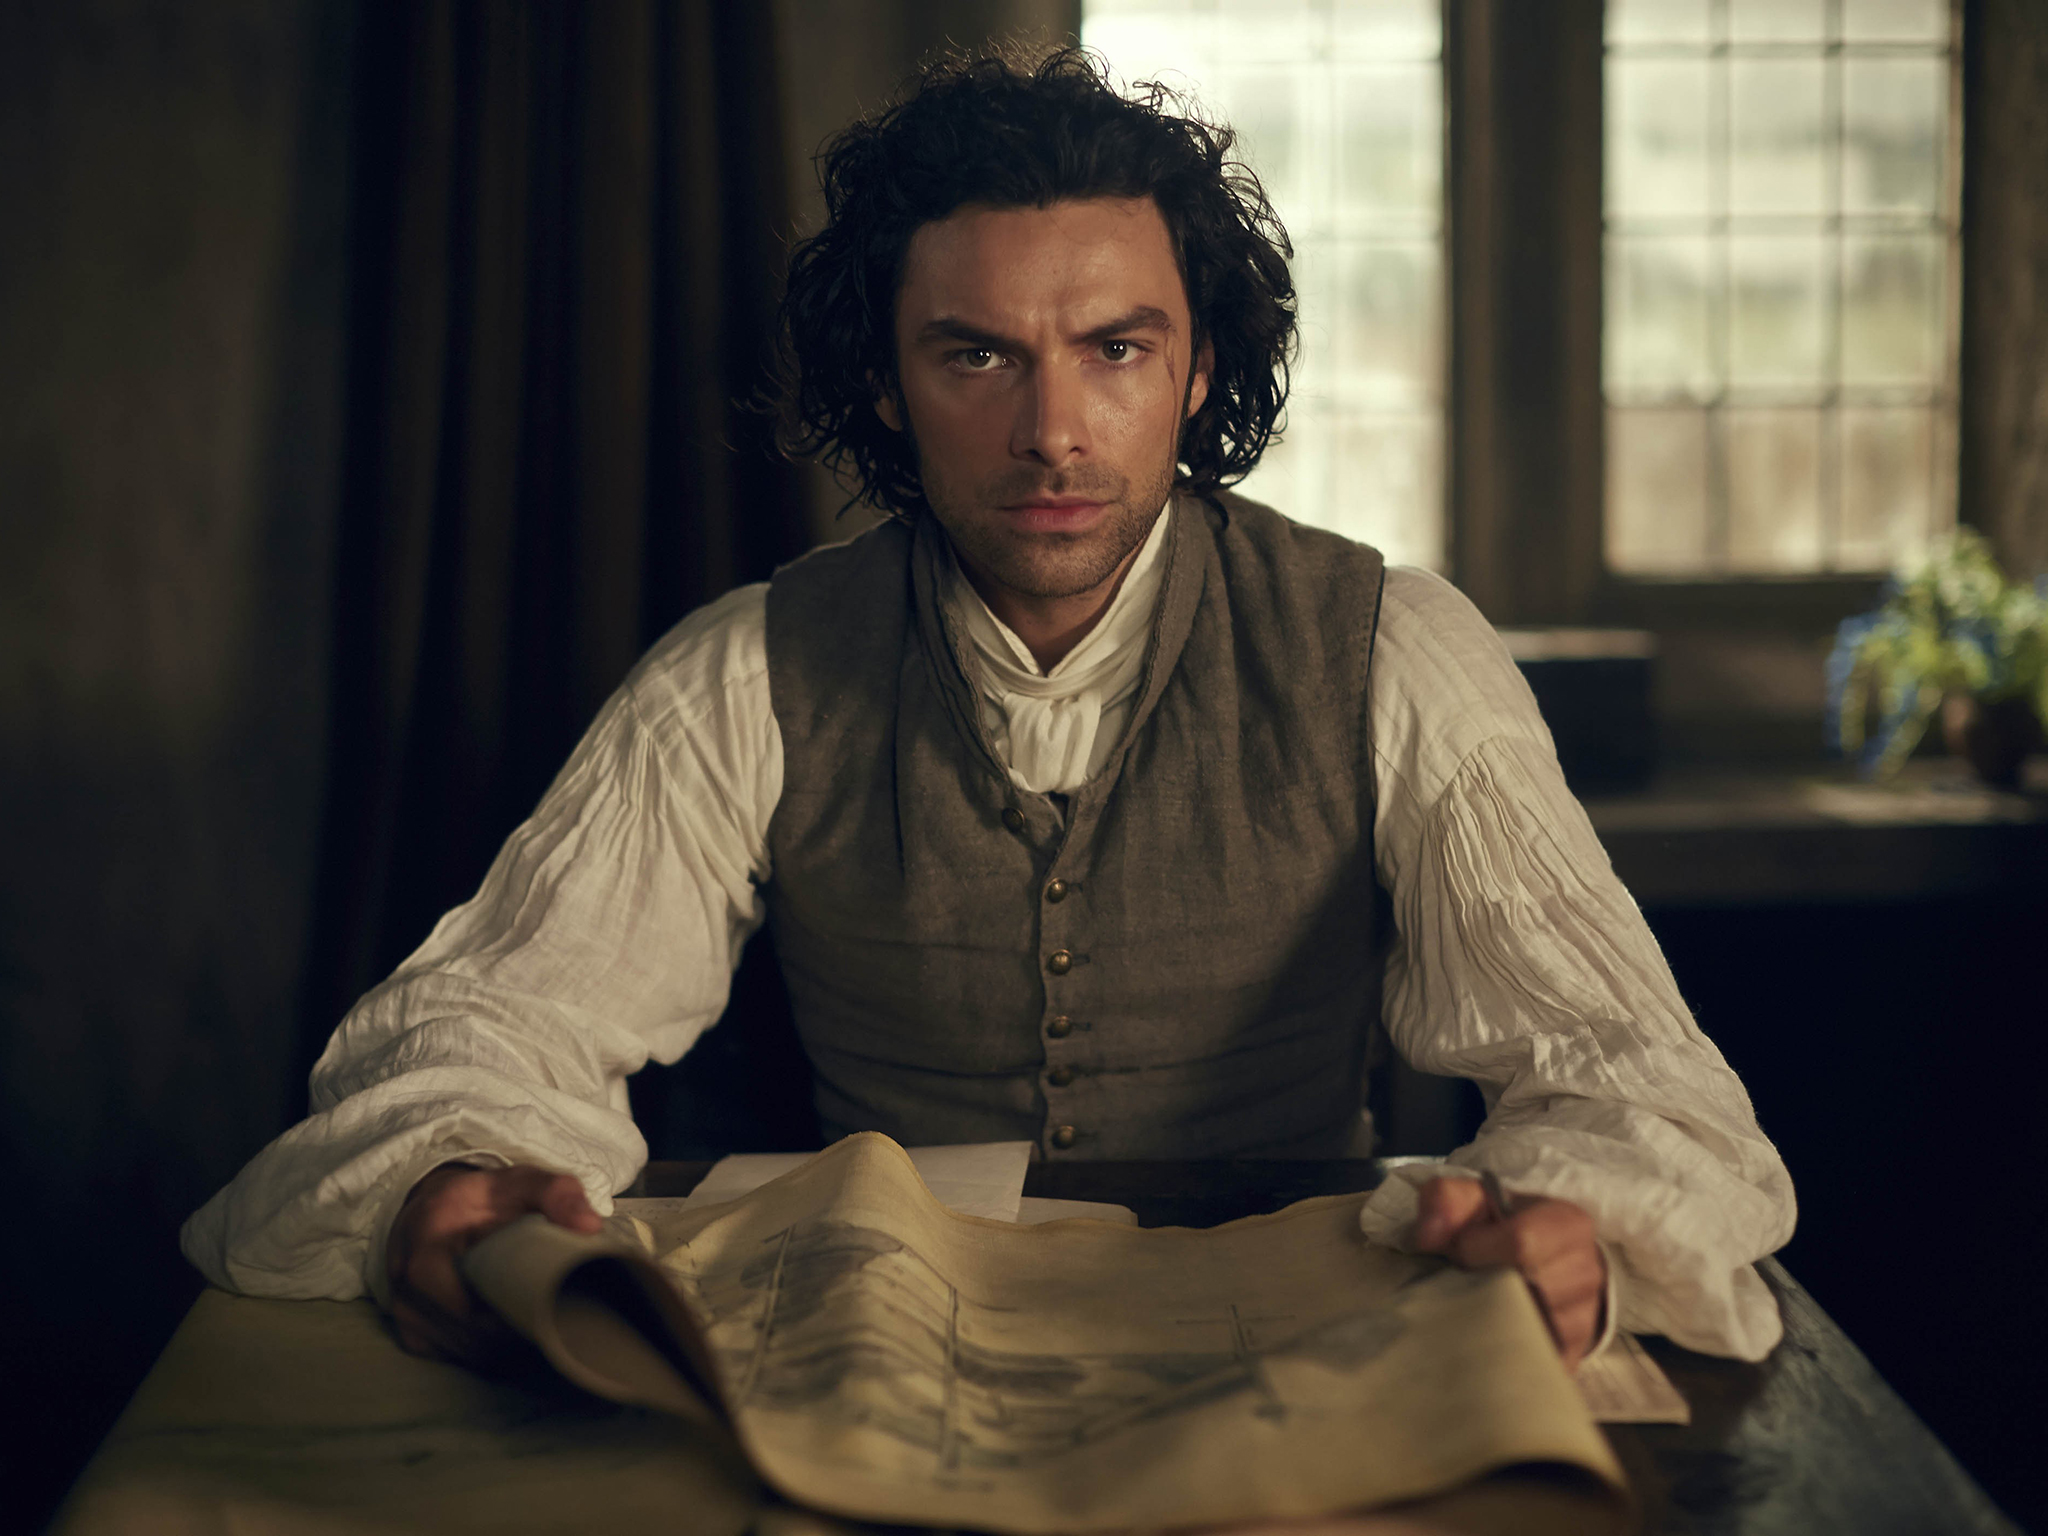 Poldark Style: 5 Fashions Inspired by Aidan Turner's Ross Poldark